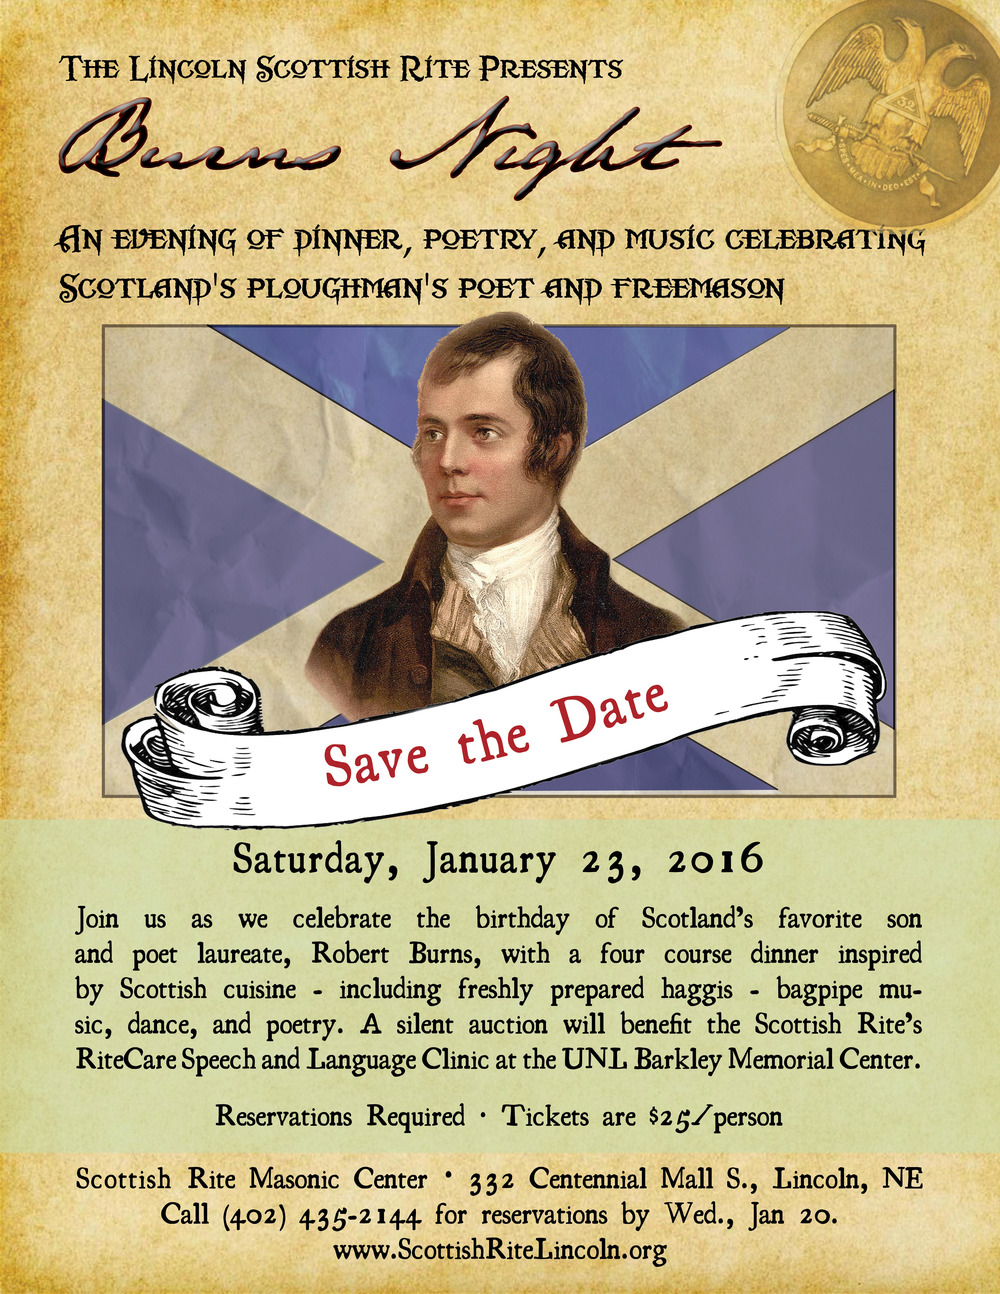 The 2016 Robert Burns Dinner flier